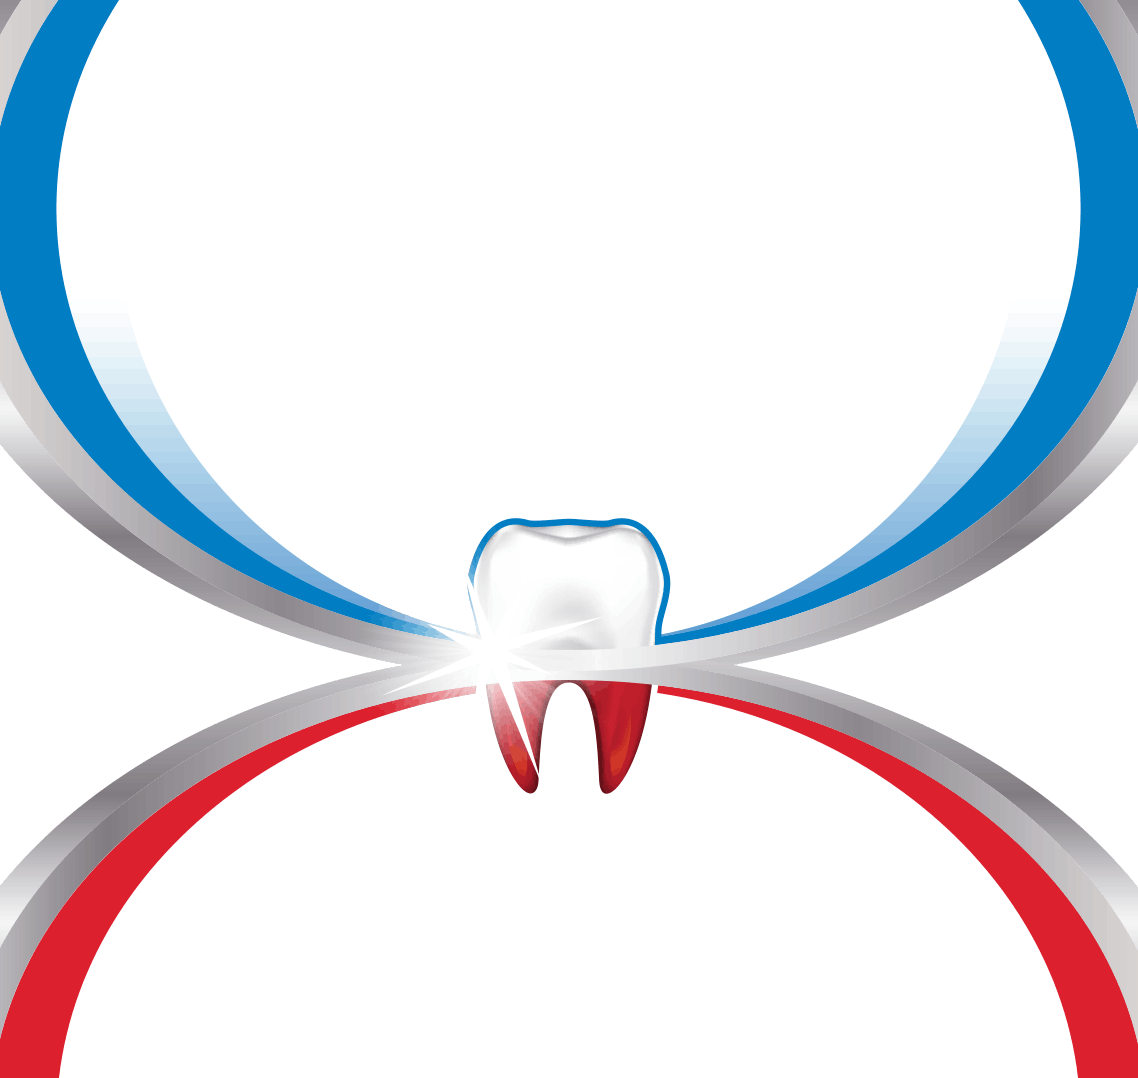 Glistening tooth highlighting the benefits of parodontax toothpaste